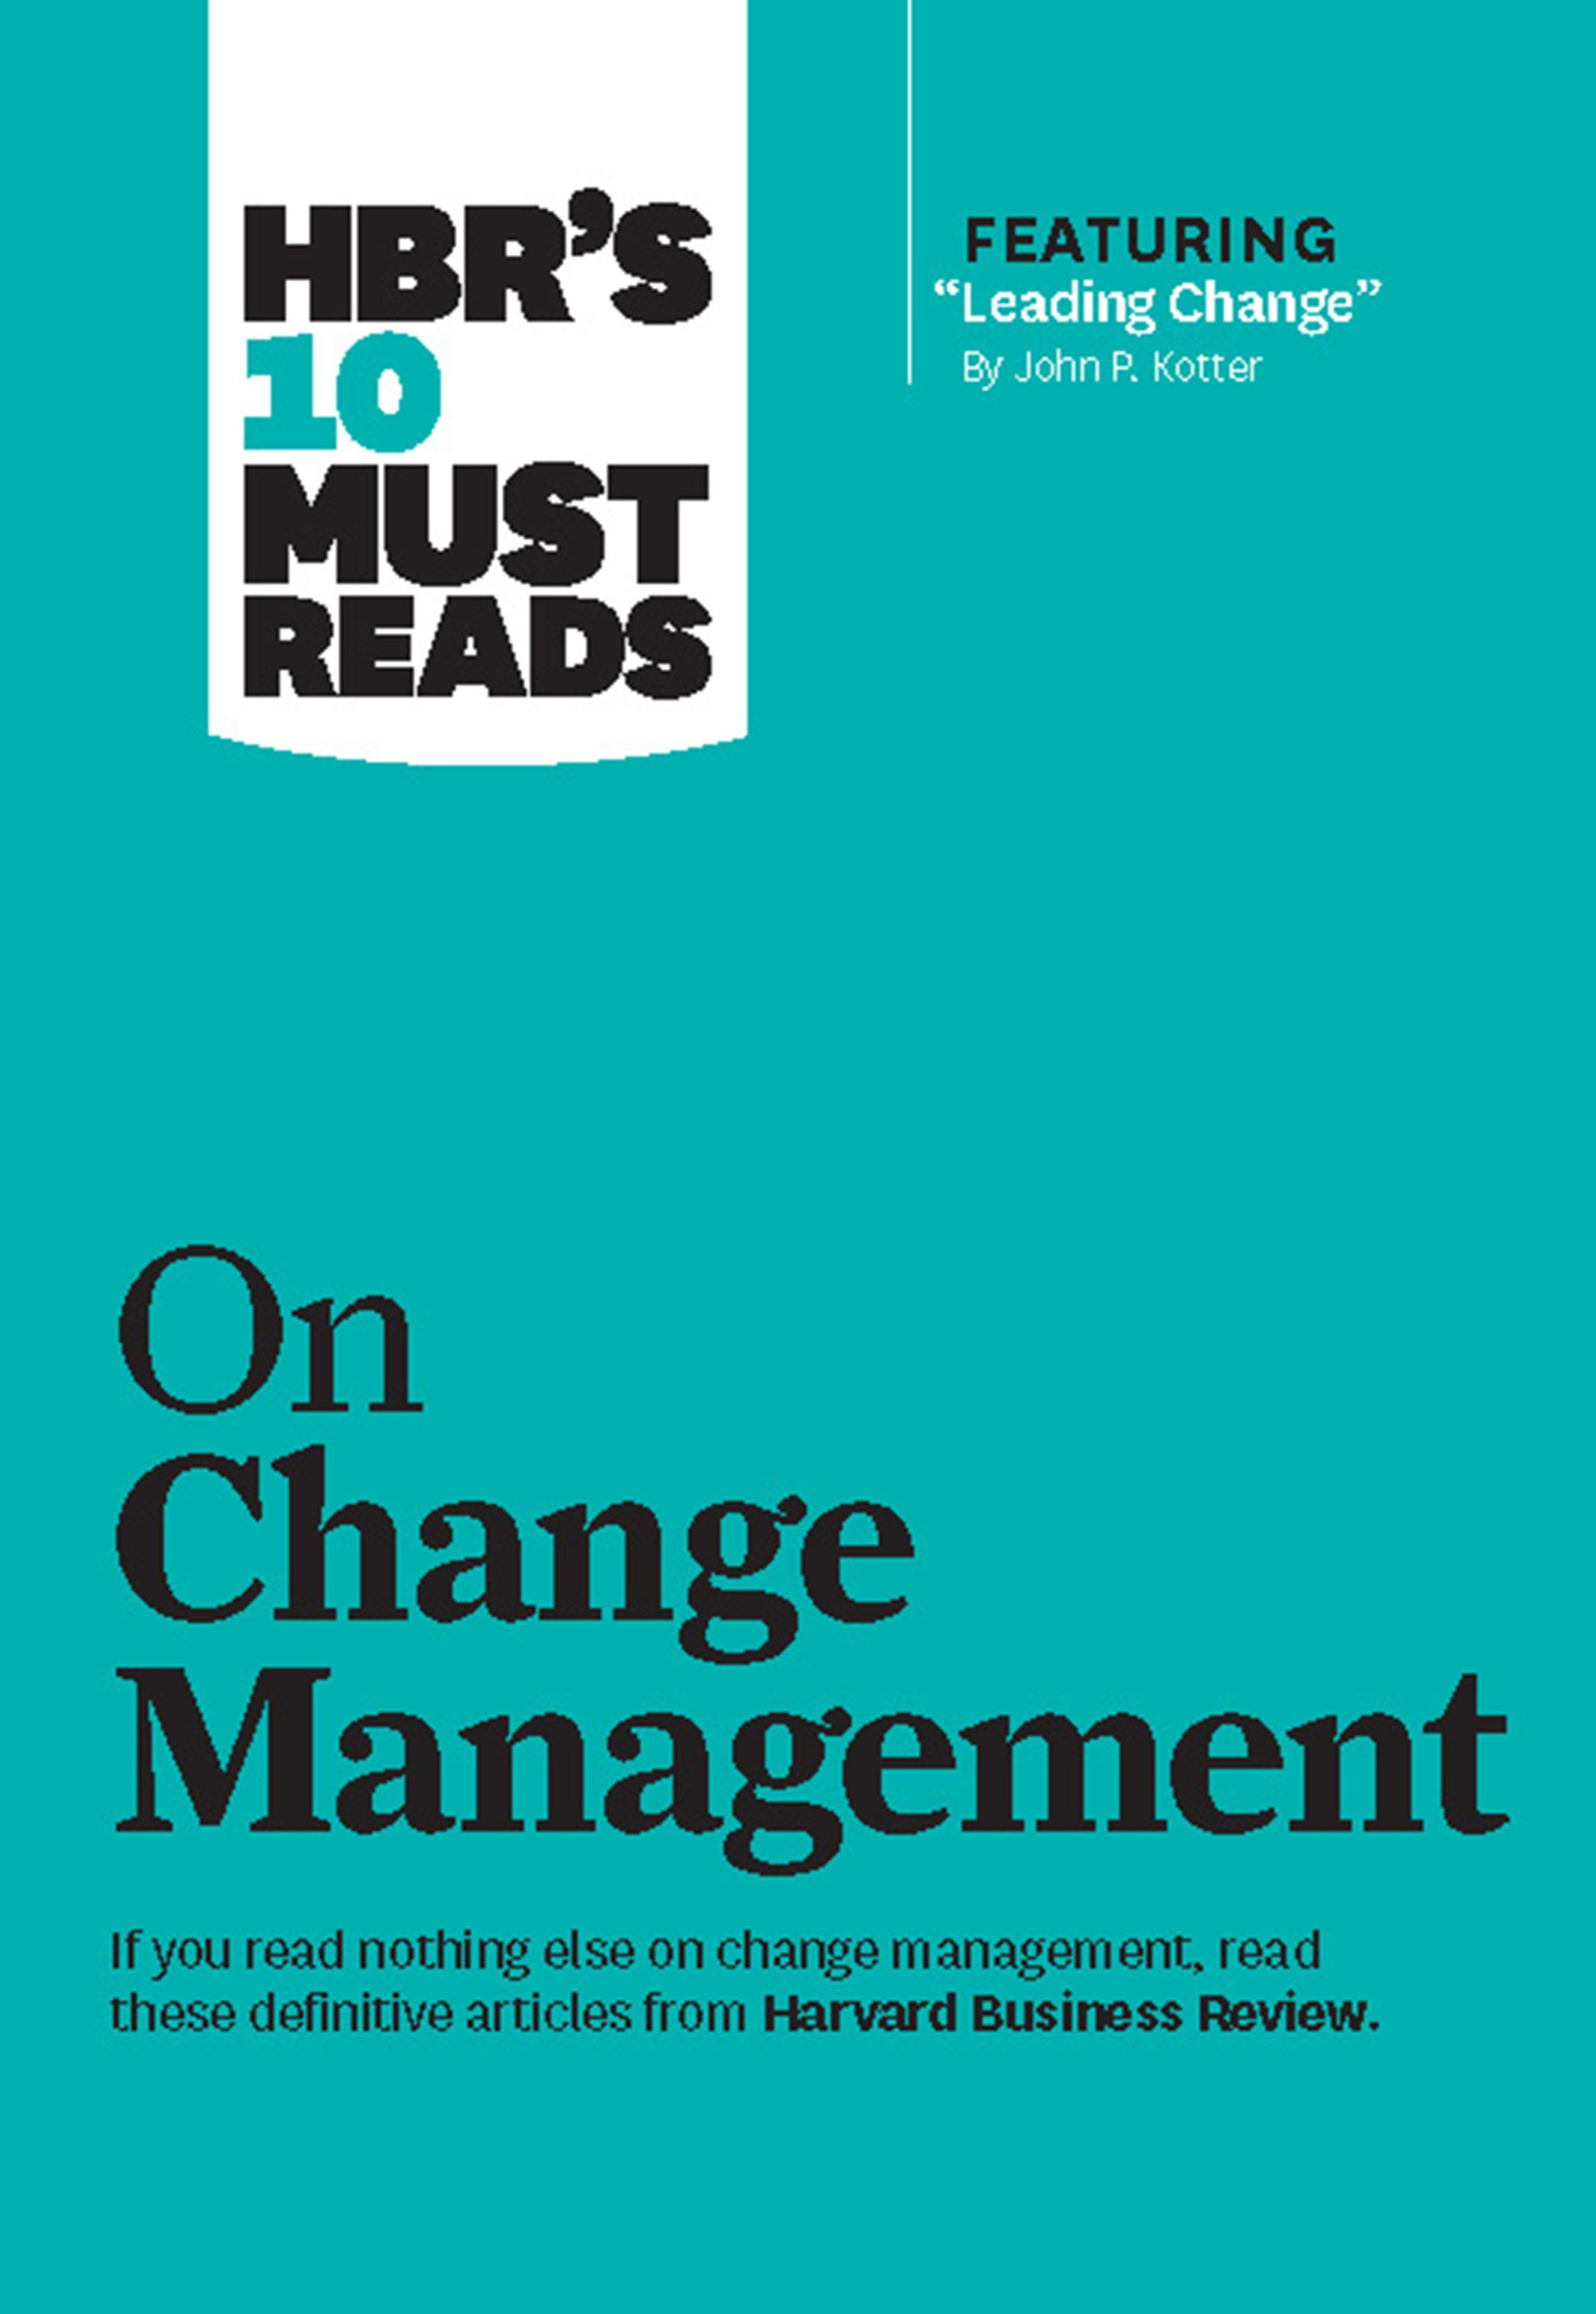 change management book review Change management, which is the term most everyone uses, refers to a set of basic tools or structures intended to keep any change effort under control the goal is often to minimize the.